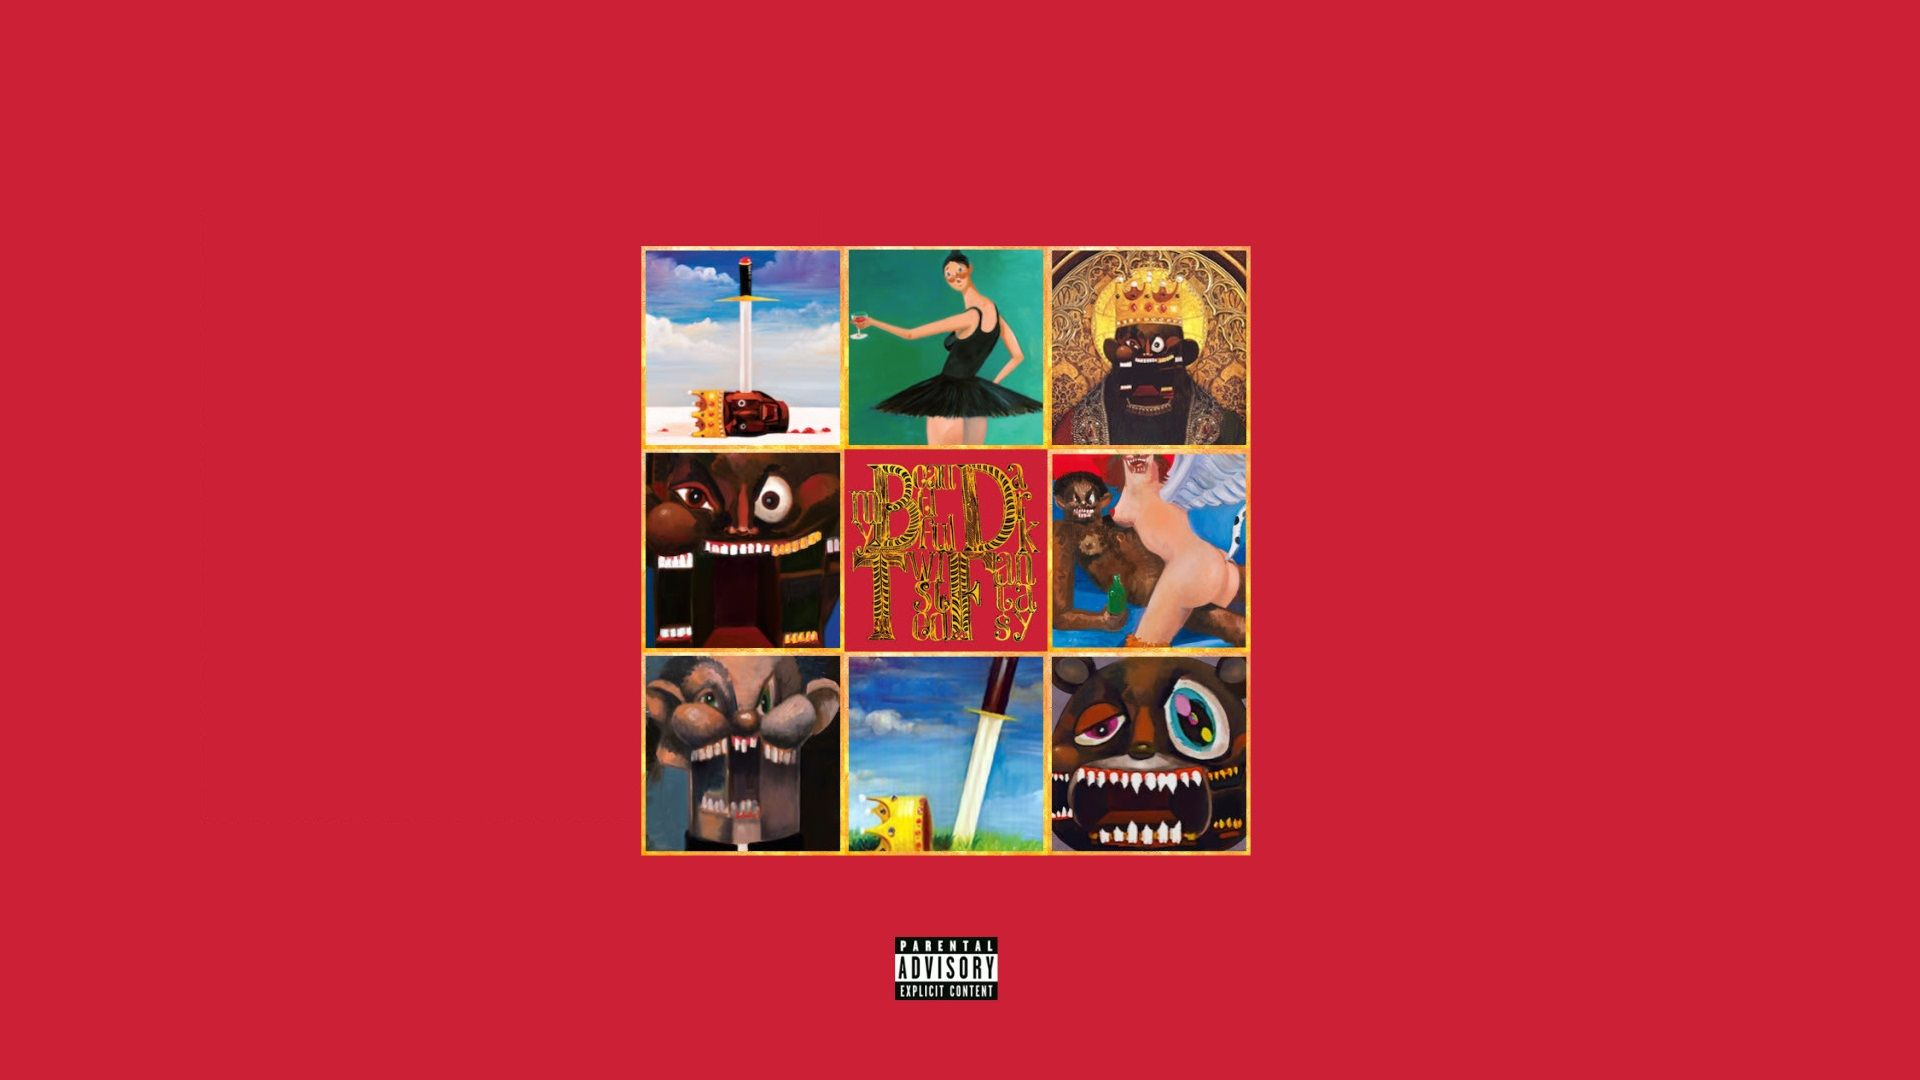 My Beautiful Dark Twisted Fantasy 1920 By 1080 R Wallpapers Beautiful Dark Twisted Fantasy Dark And Twisted Kanye West Album Cover